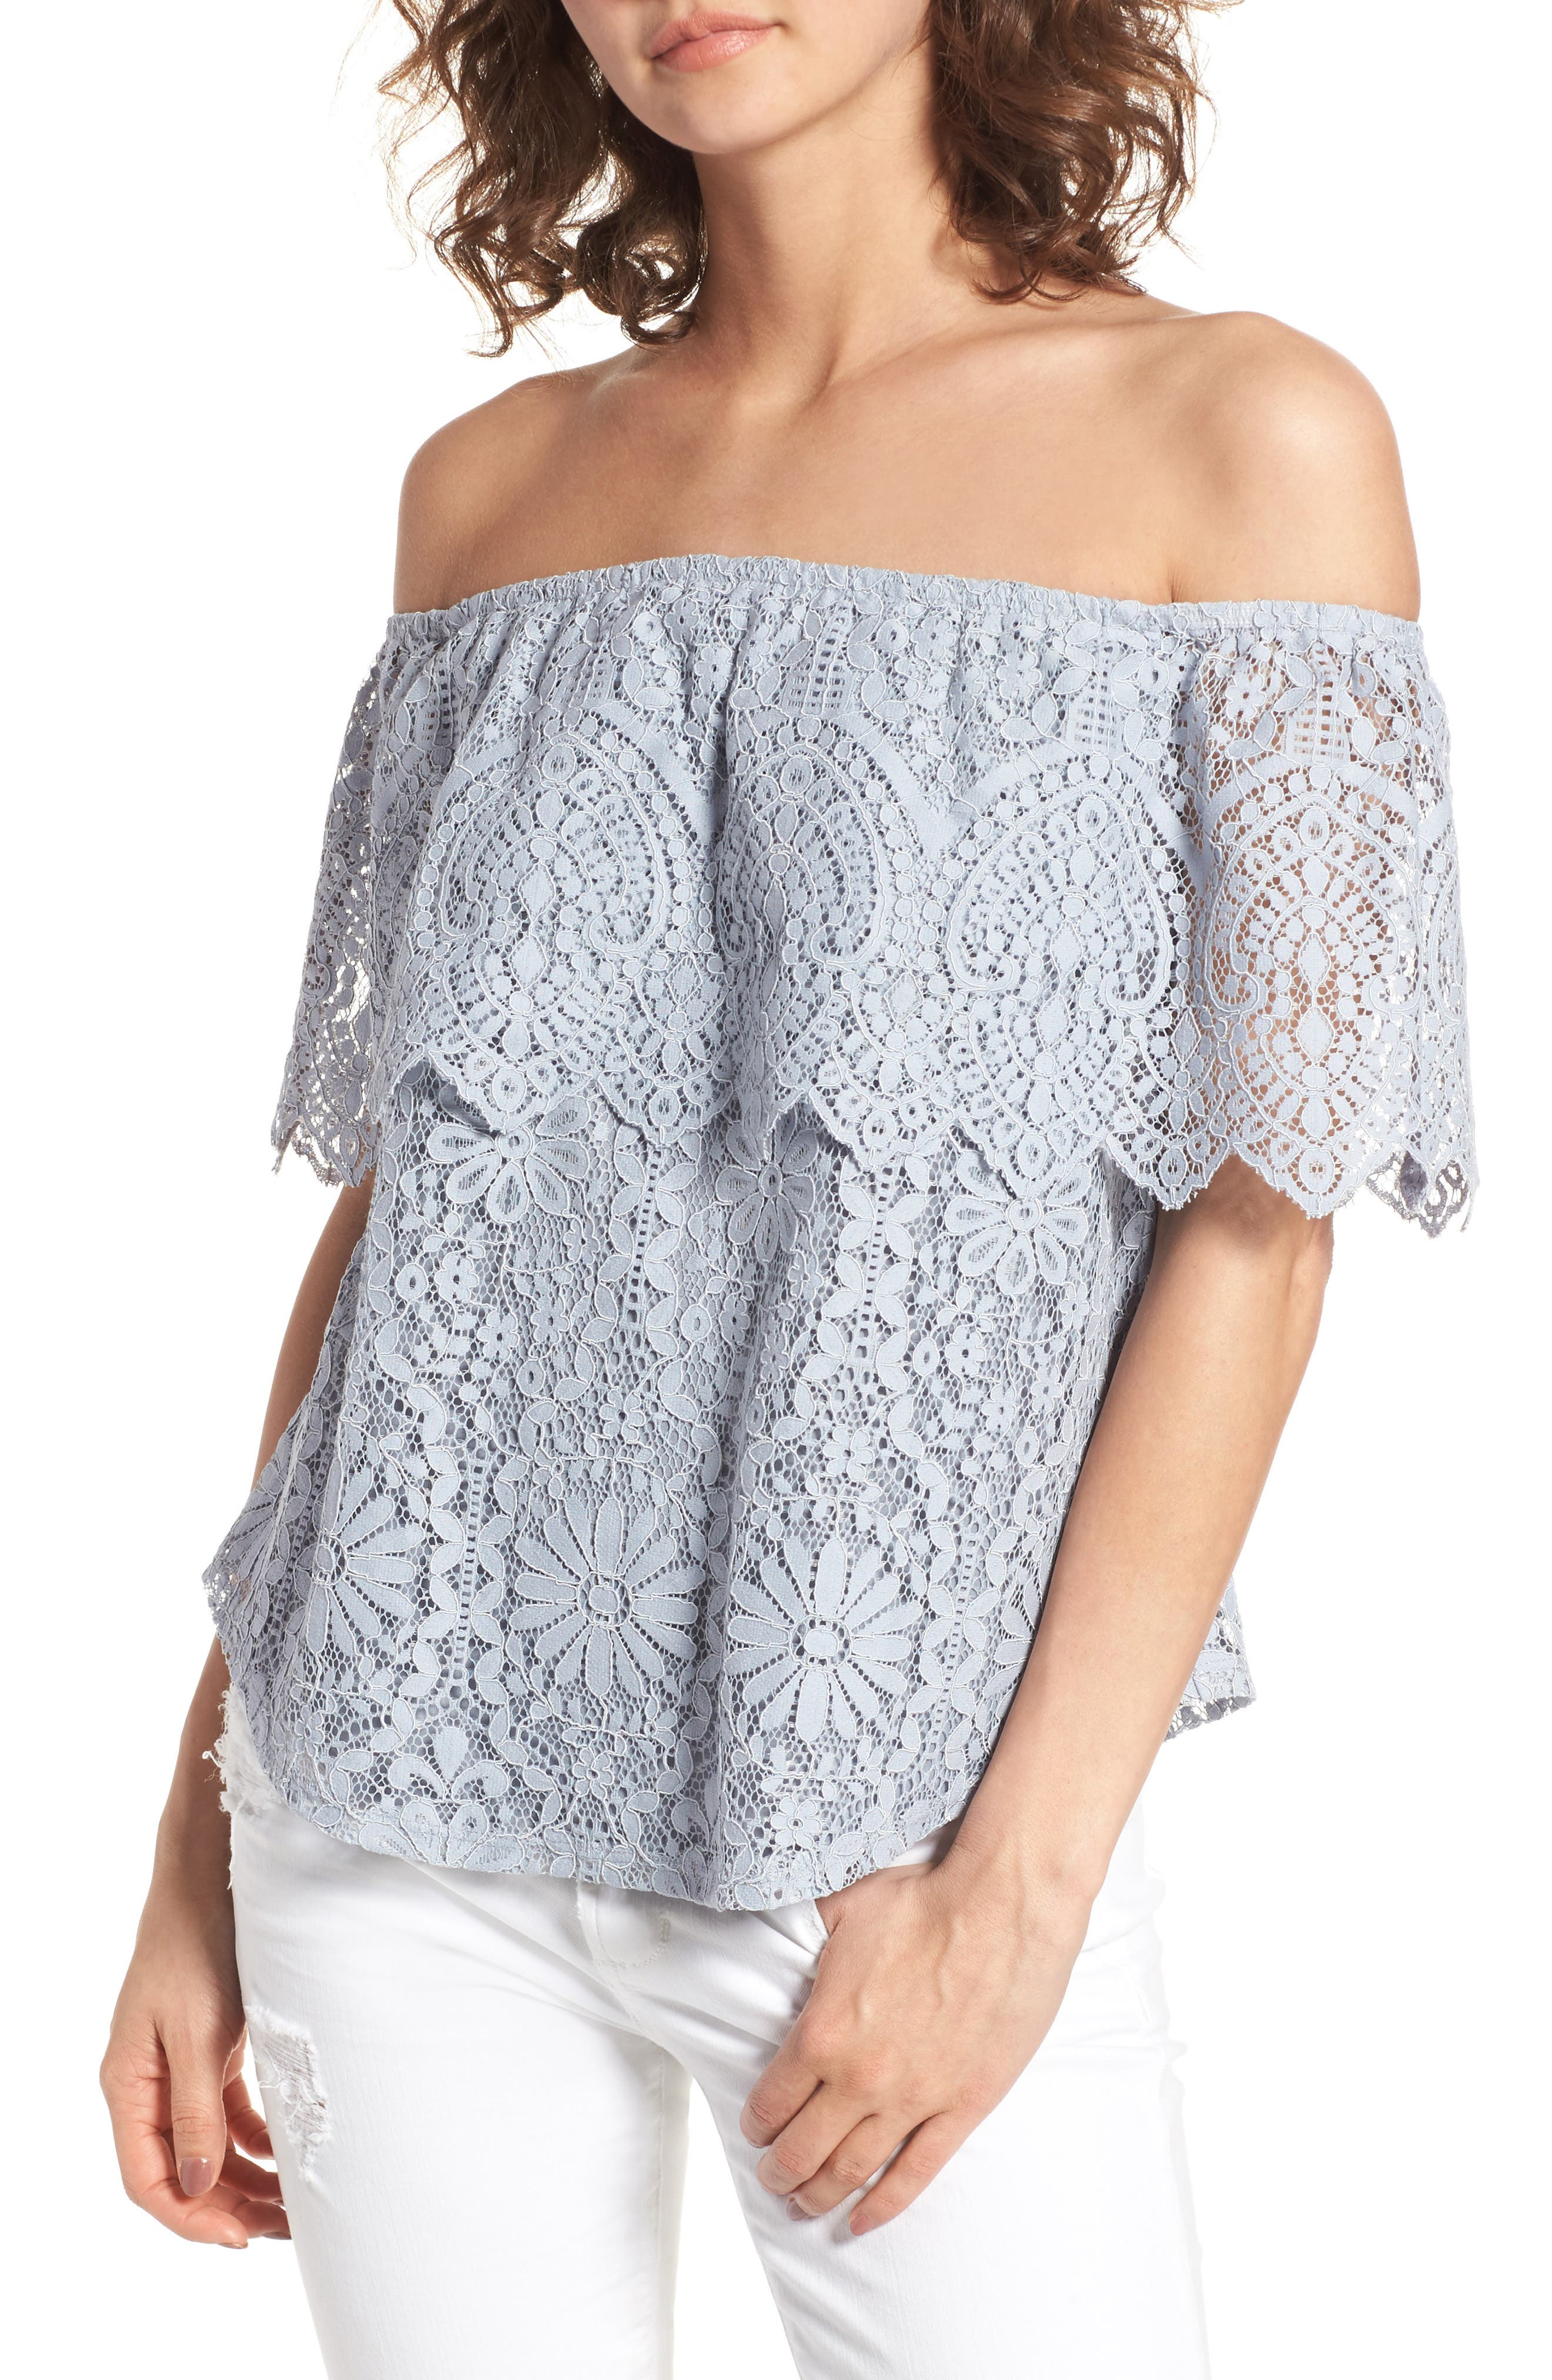 Alternate Image 1 Selected - BP. Lace Off the Shoulder Top